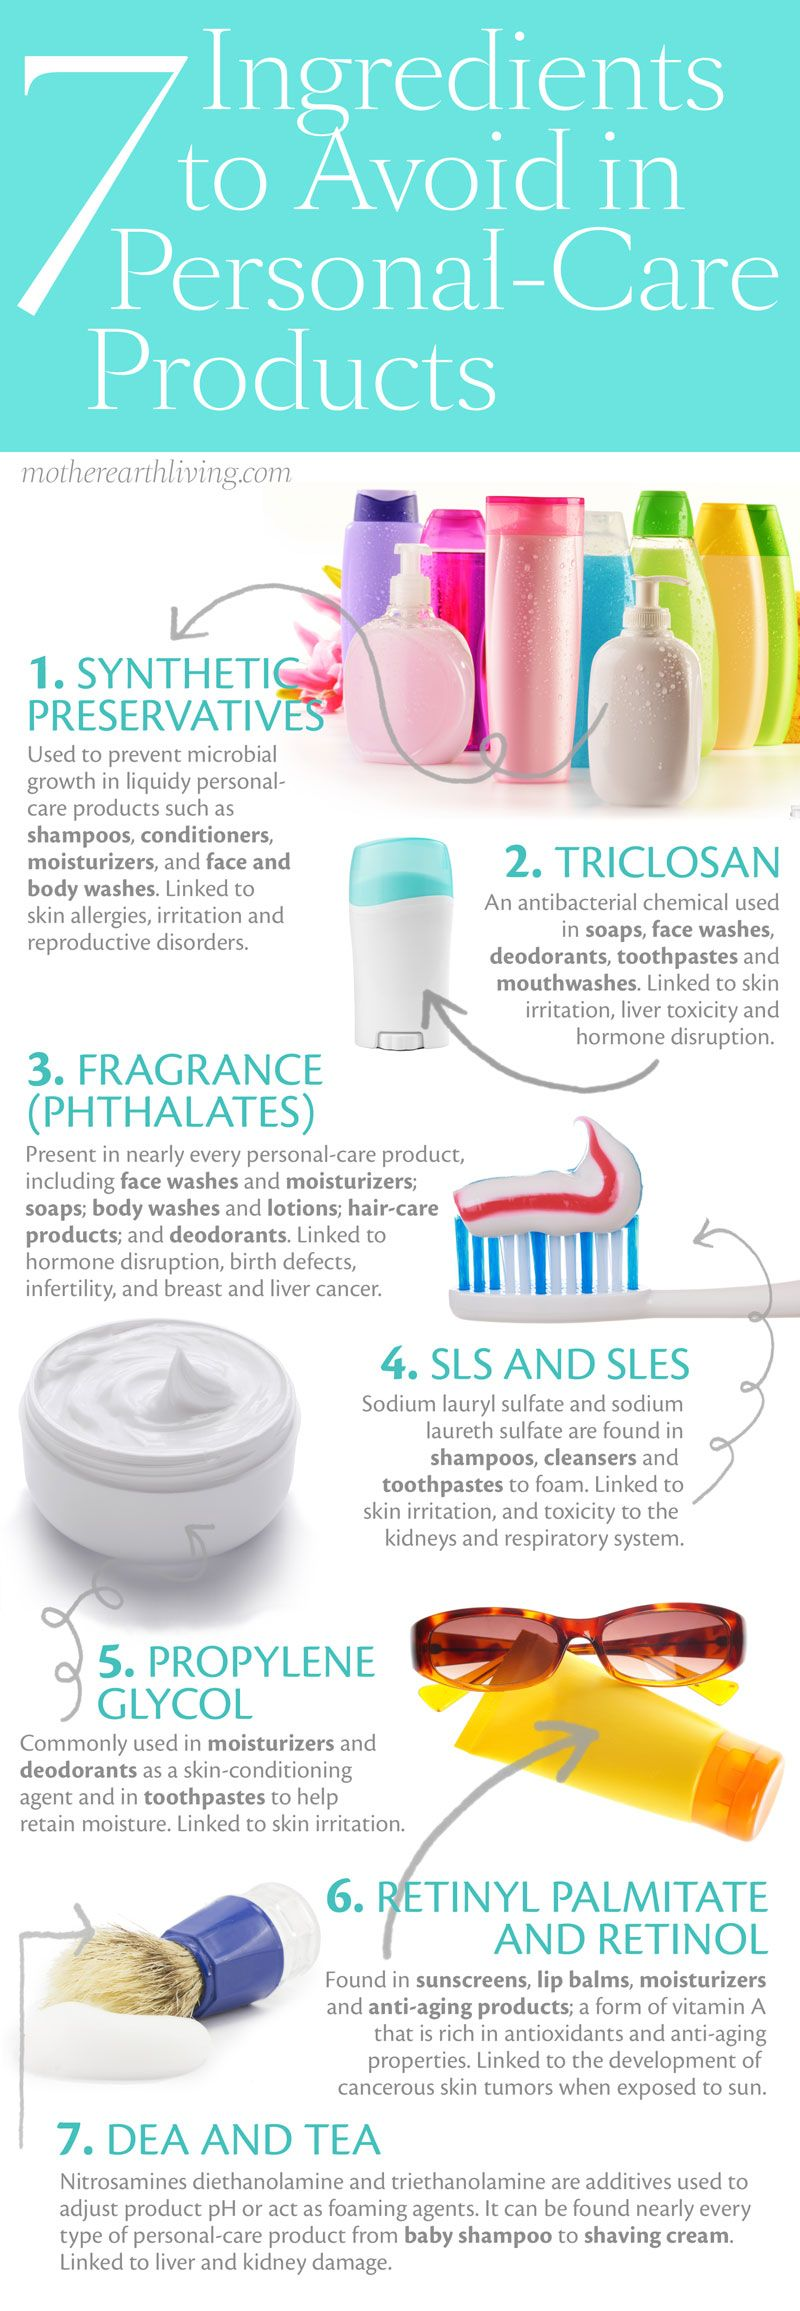 The Ban List 7 Ingredients To Avoid In Personal Care Products Green Living Natural Home Garden Natural Skin Care Health Organic Skin Care